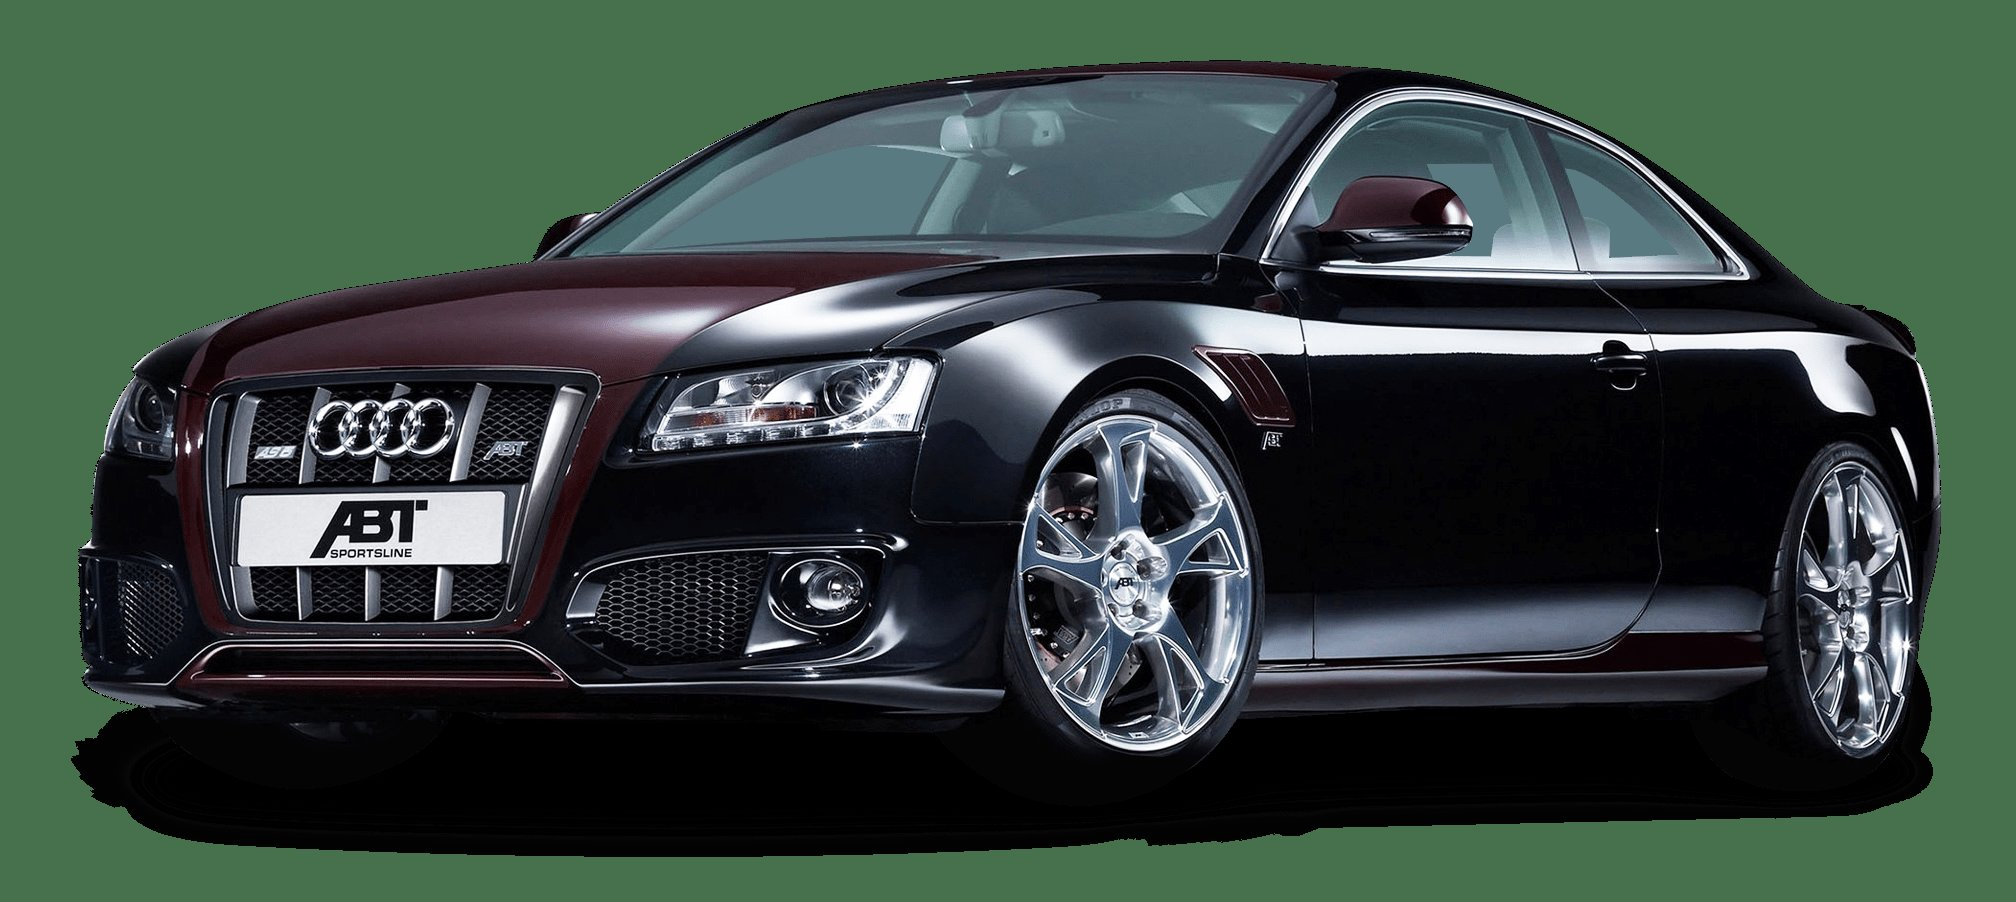 Latest Black Audi Car Png Image Pngpix Free Download